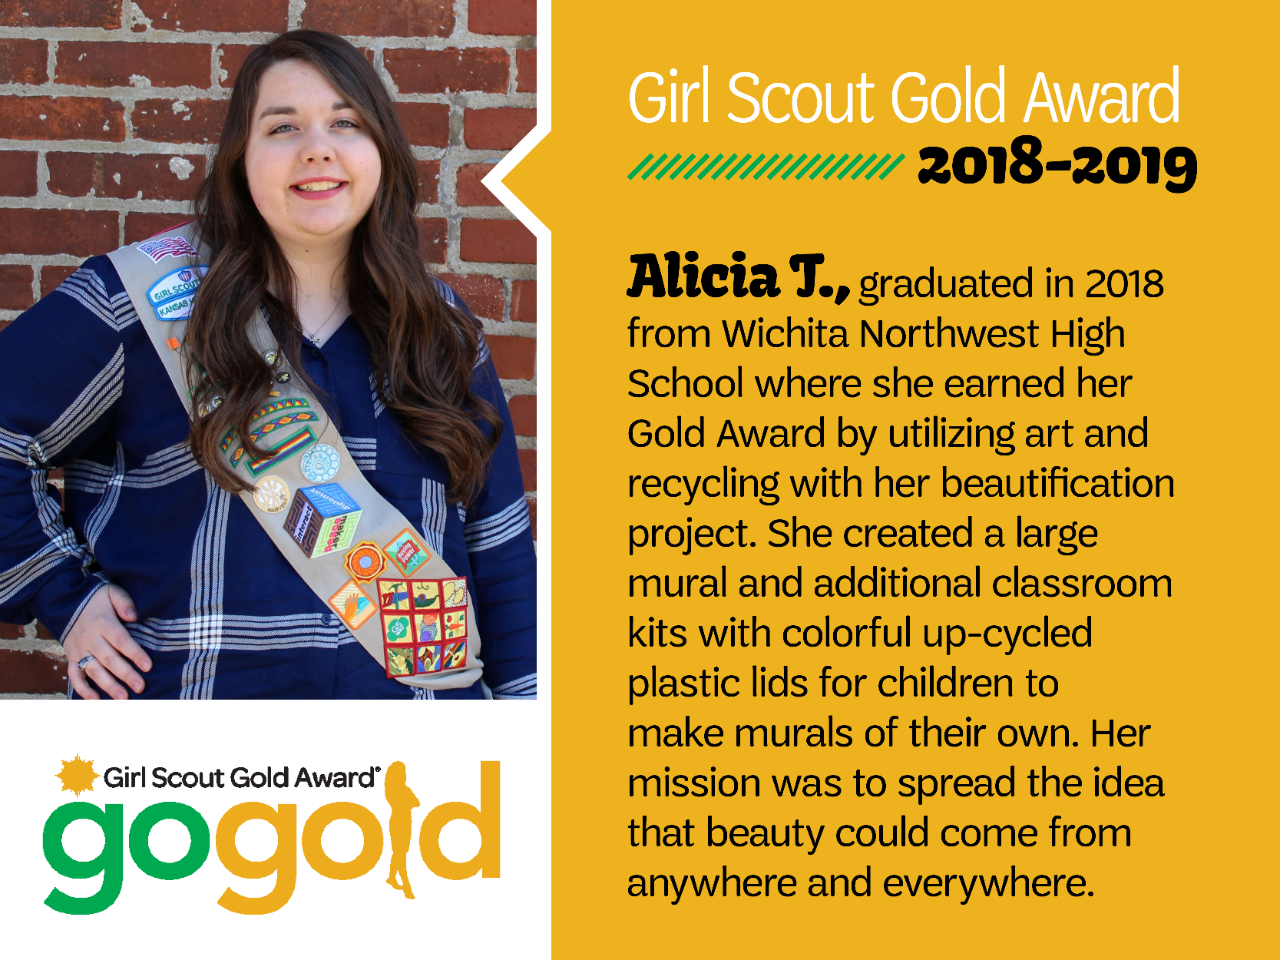 gold award girl scouts